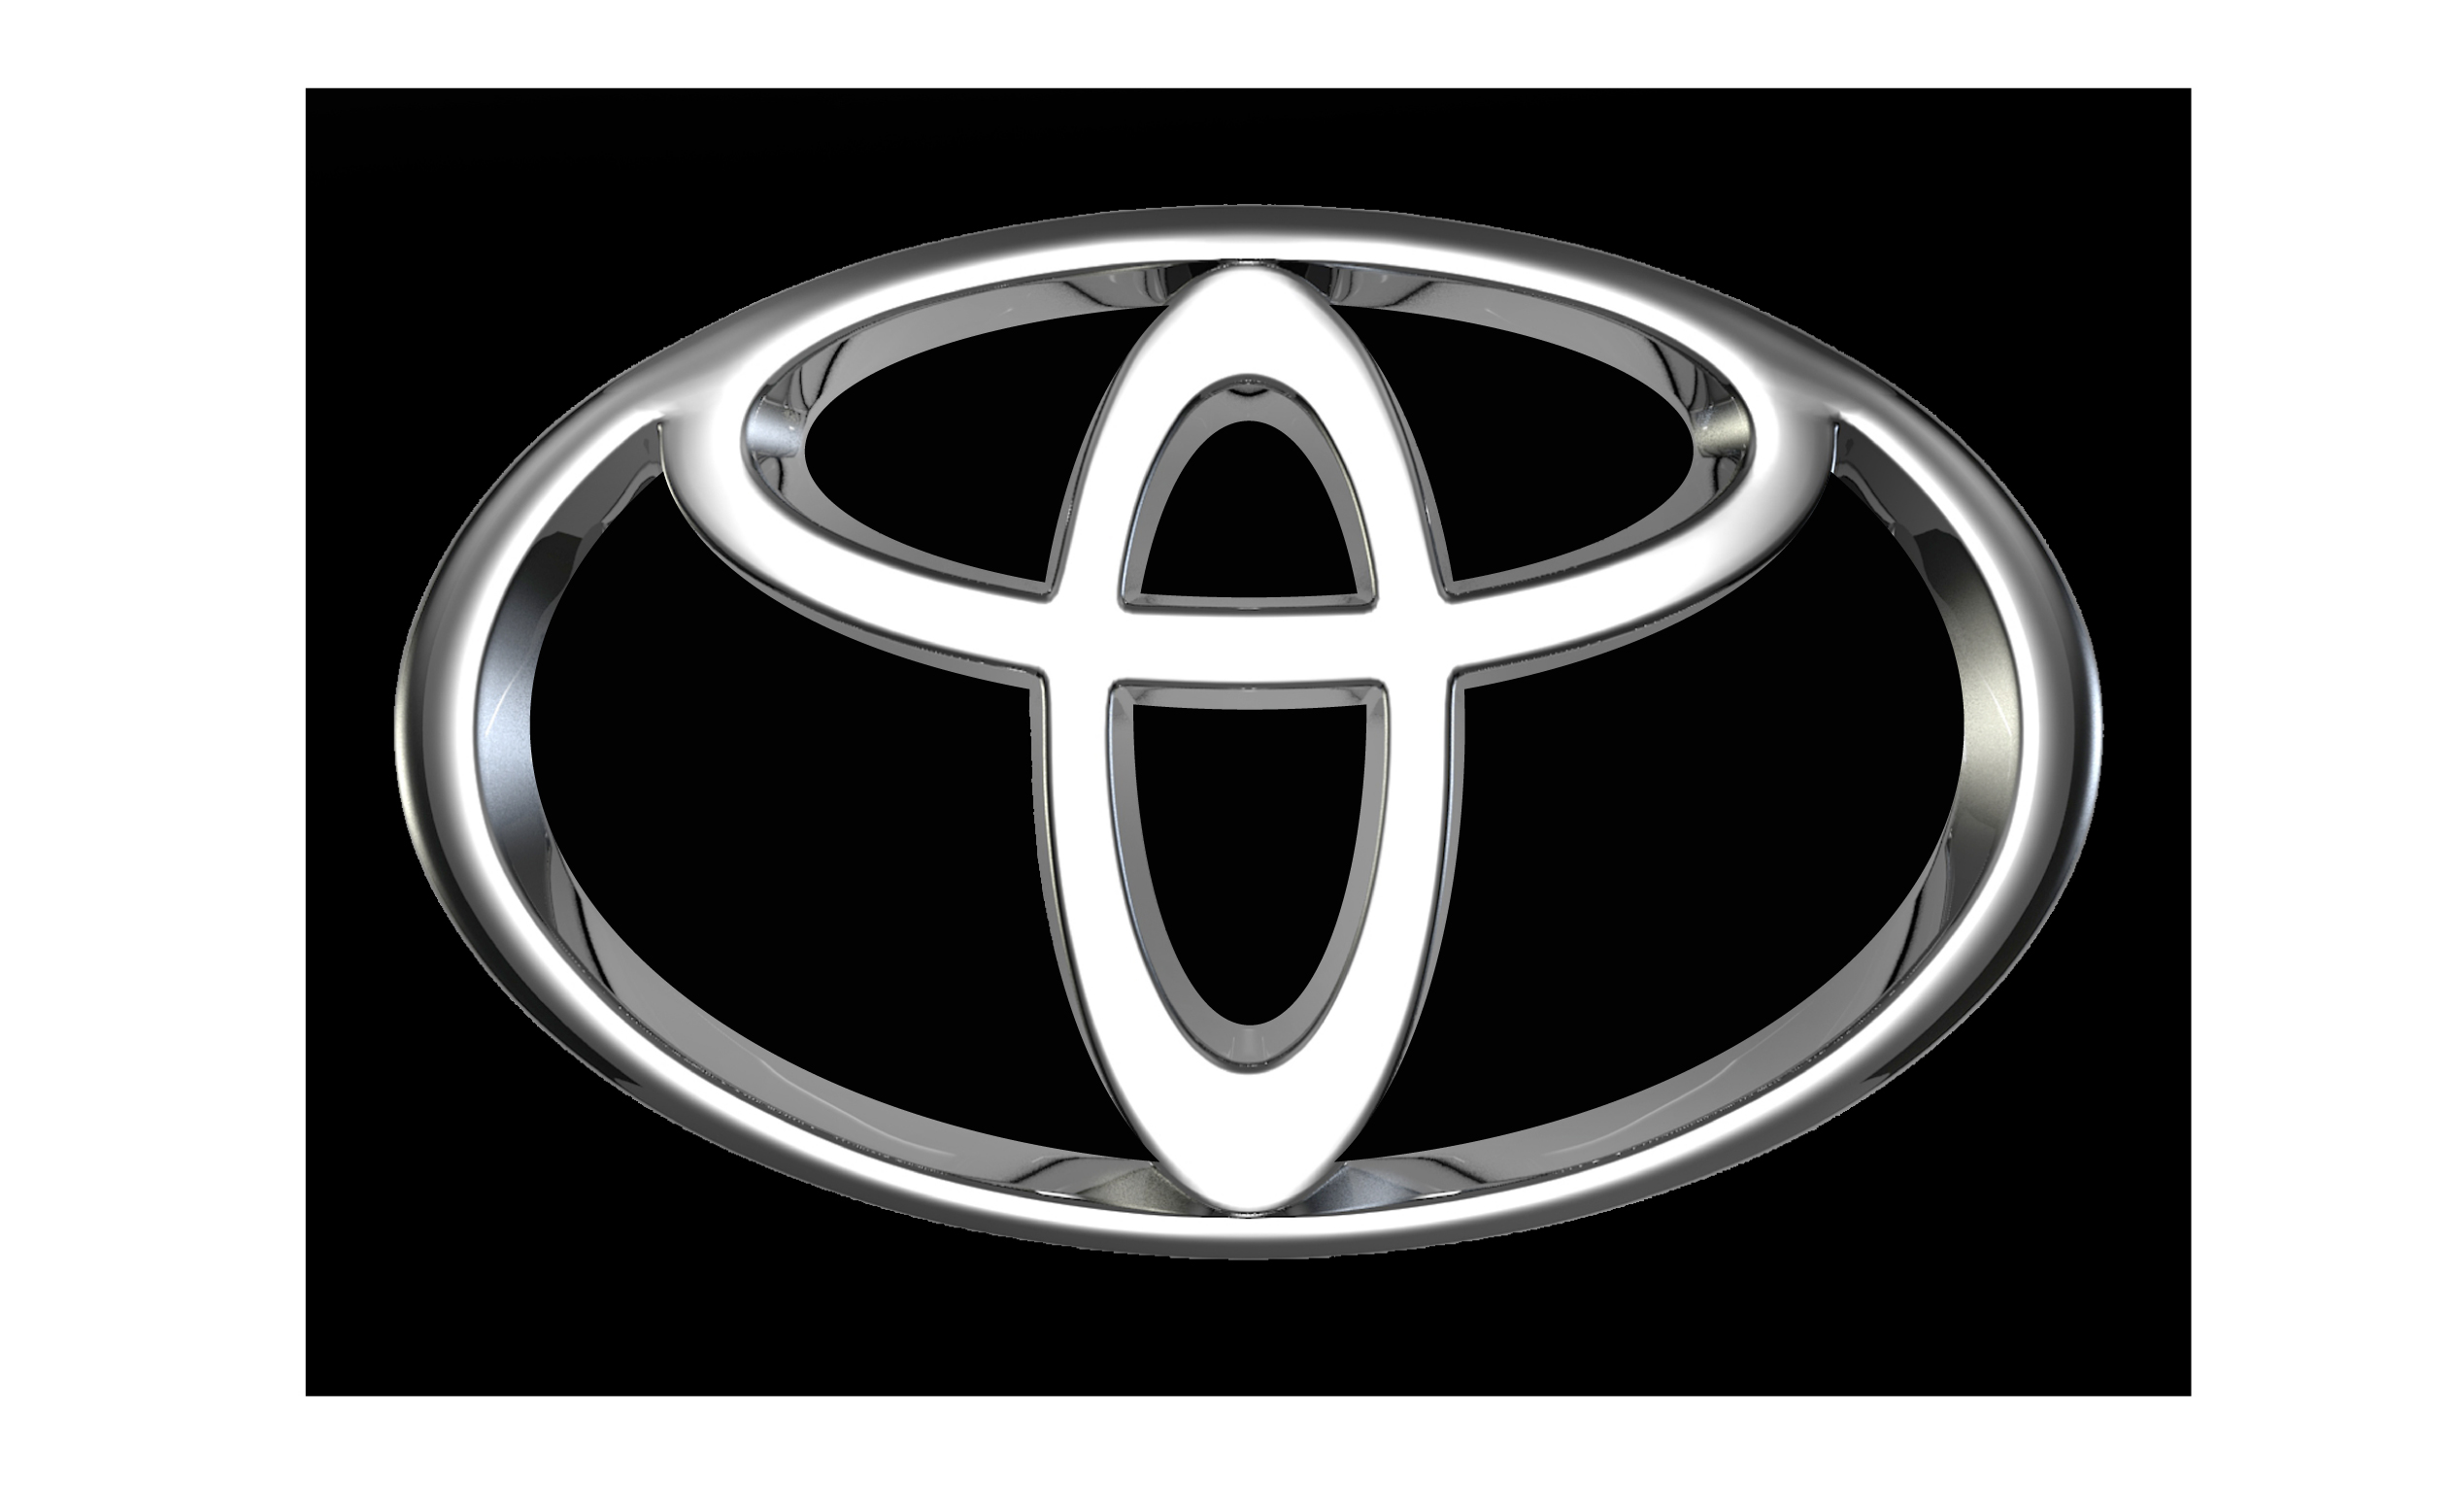 toyota hd wallpapers - photo #49